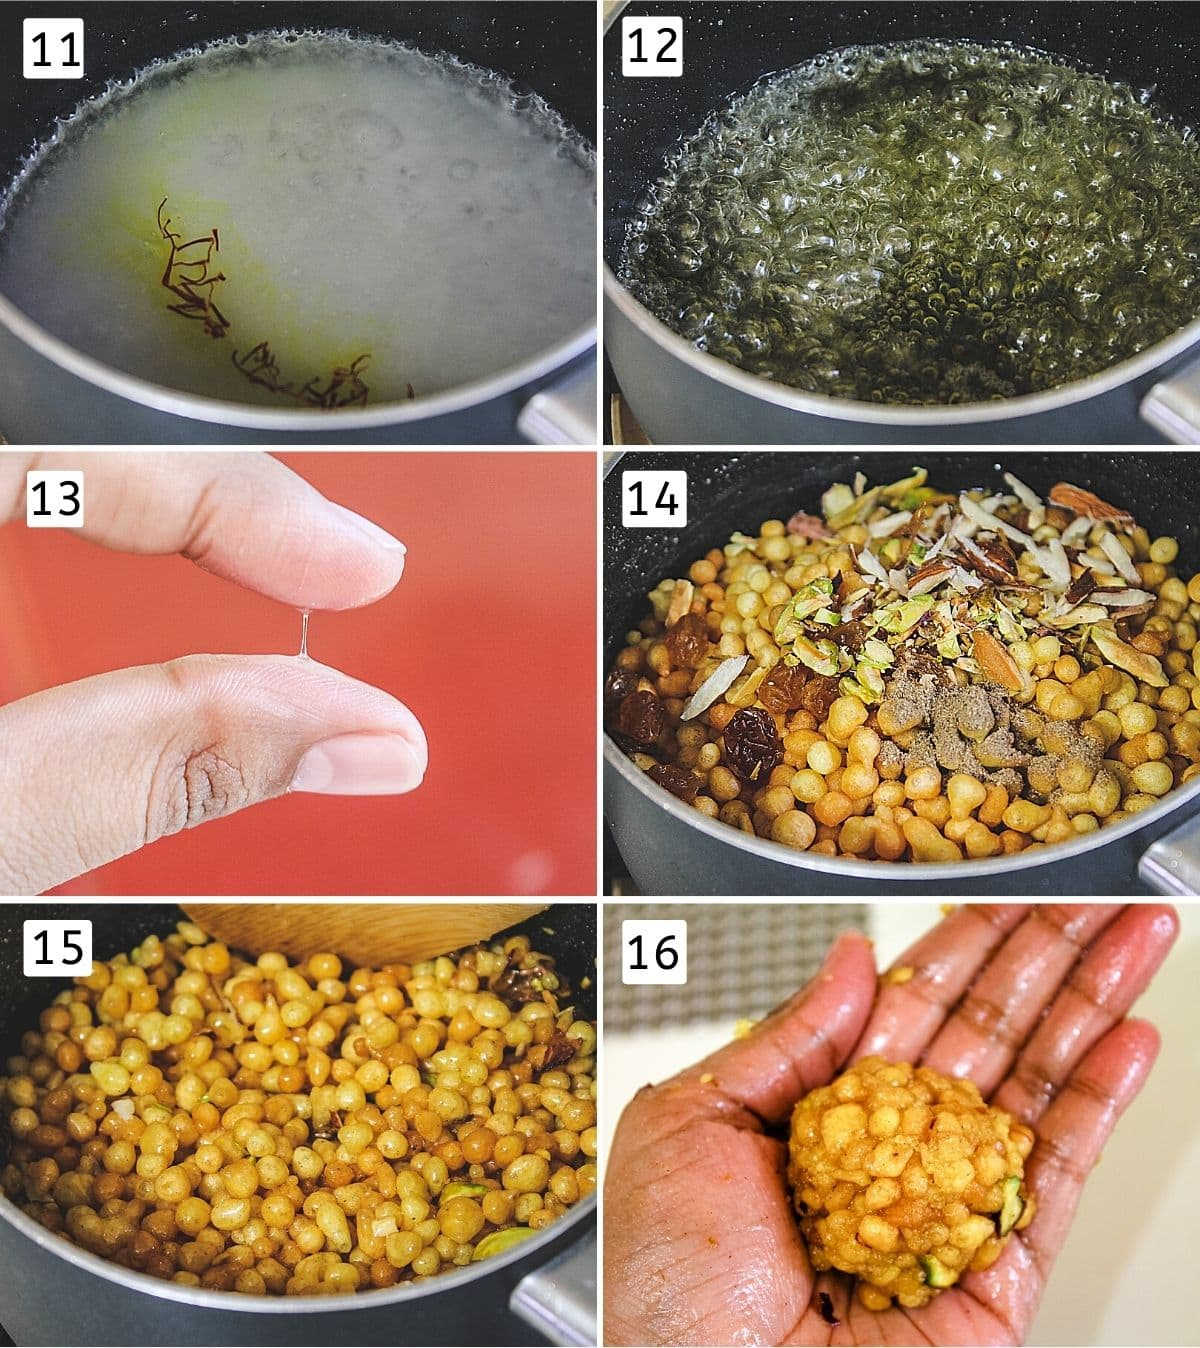 Collage of 6 images showing saffron in sugar syrup, boiling syrups, 1-thread consistency, adding boondi, nuts to syrup, mixing and shaping